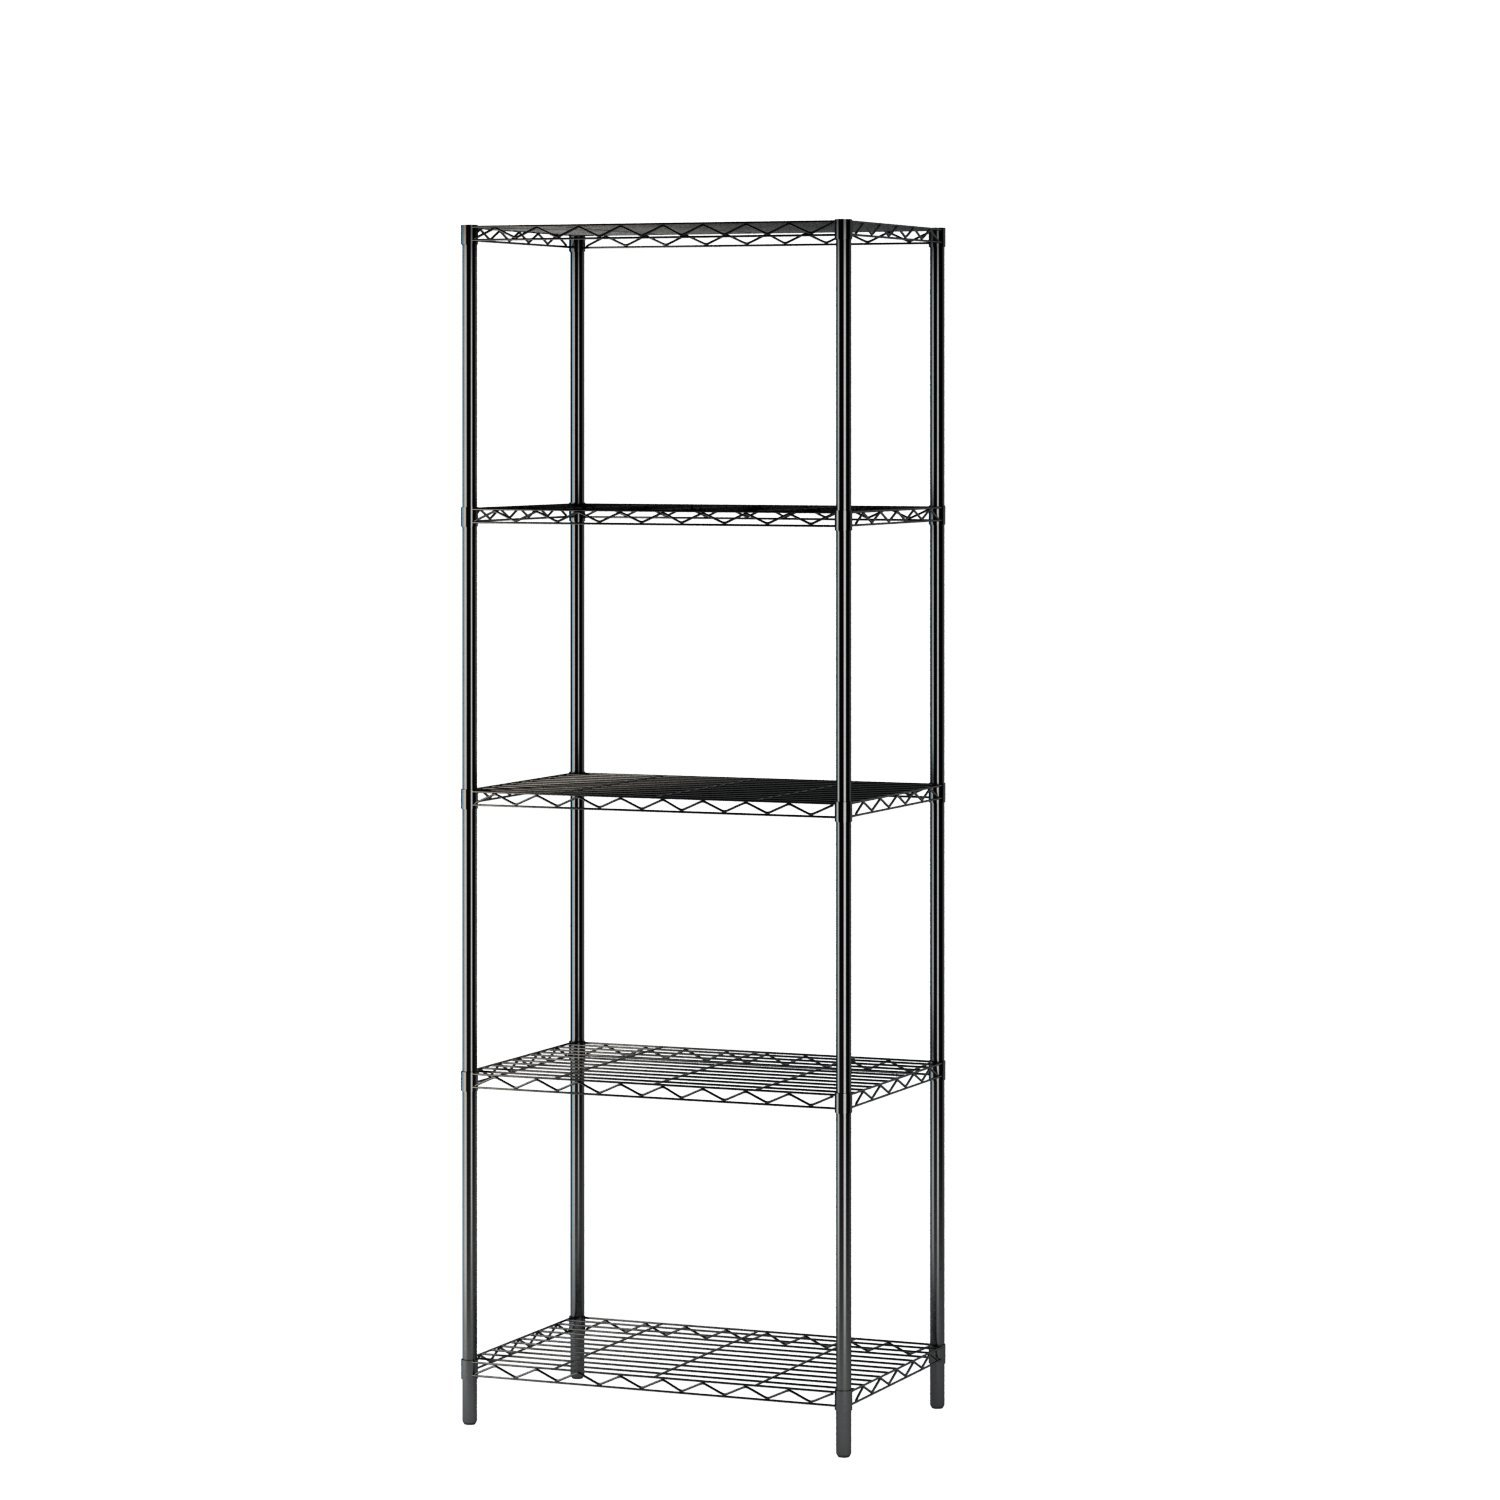 Homebi 5-tier Wire Shelving 5 Shelves Unit Metal Storage Rack Durable  Organizer Perfect For Pantry Closet Kitchen Laundry Organization In